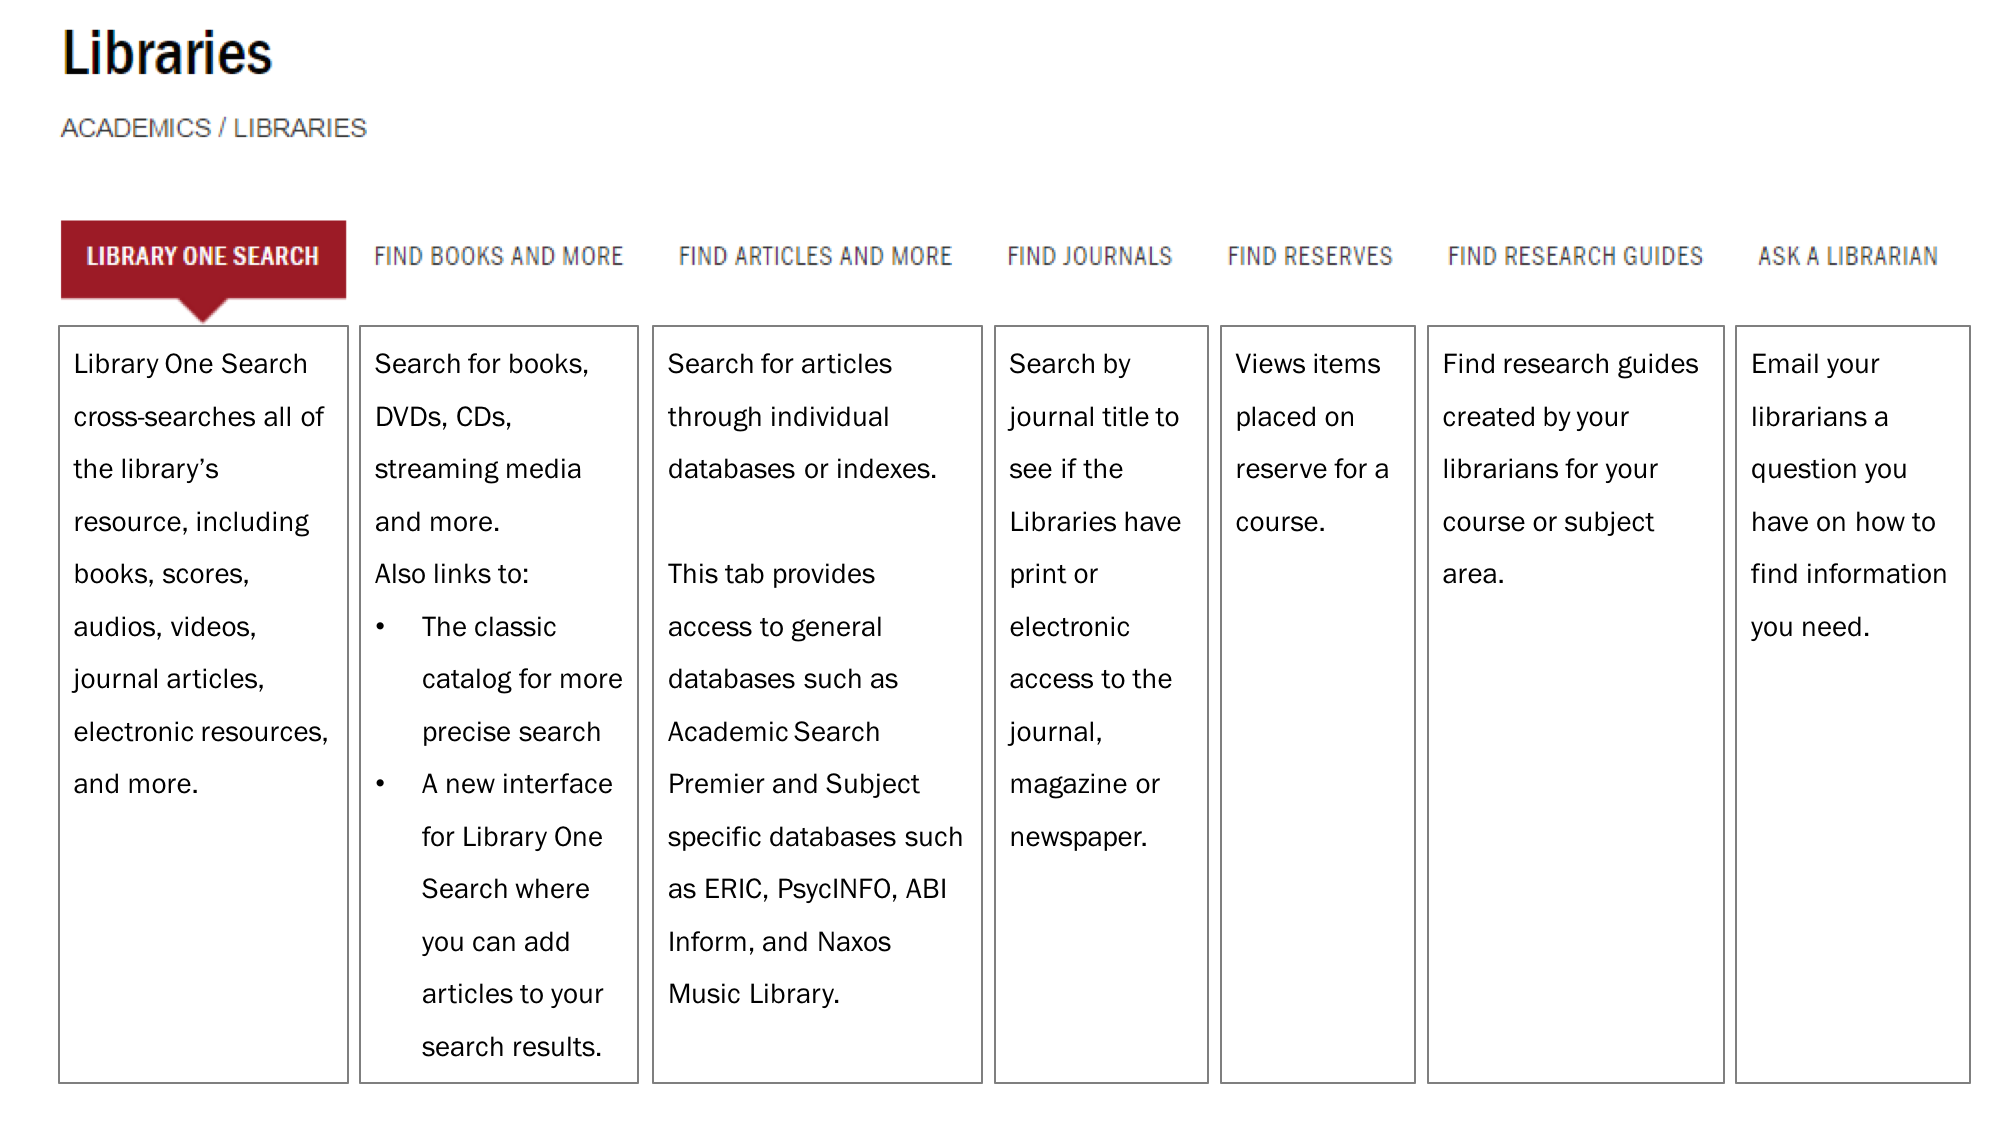 description of all the tabs on the library homepage.